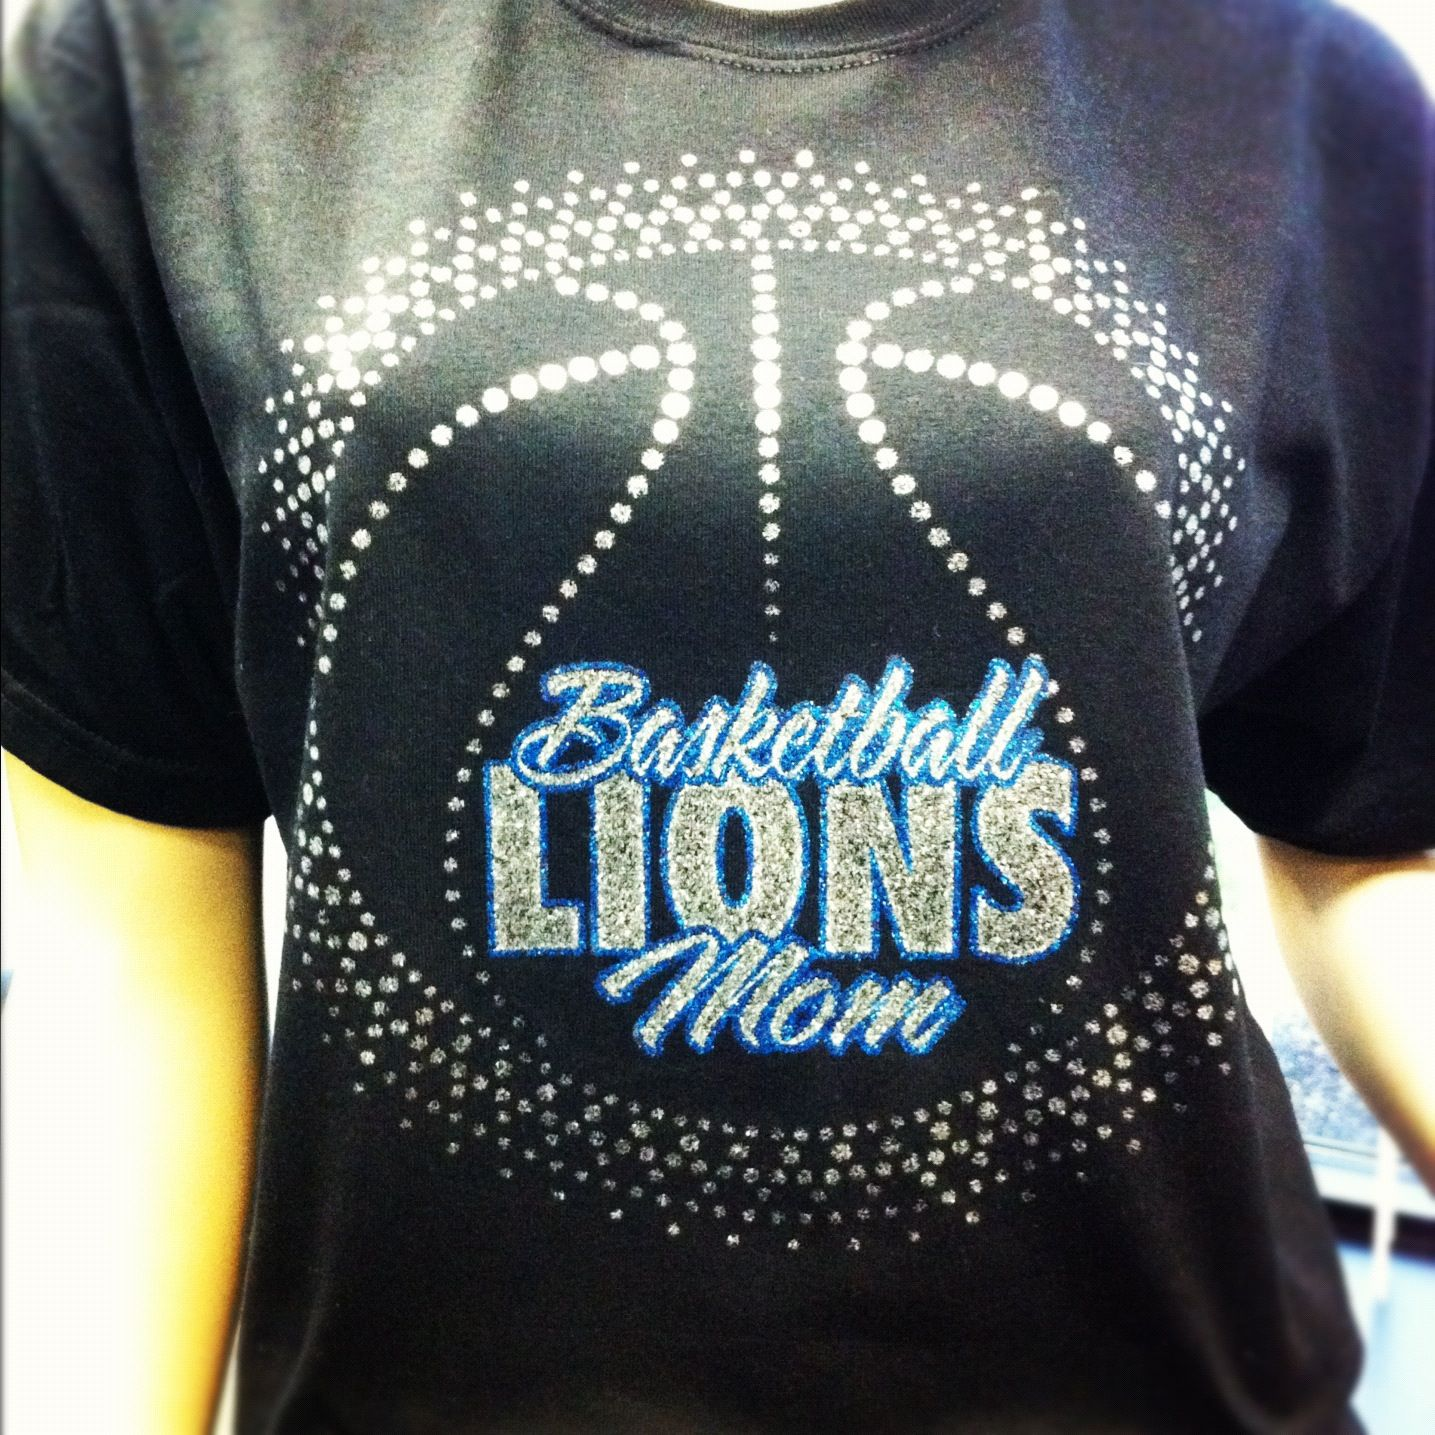 Basketball T Shirt Design Ideas 1000 images about shirt ideas on pinterest basketball memphis tigers and basketball teams T Shirt Design With Glitter Faux Rhinestones More Ideas